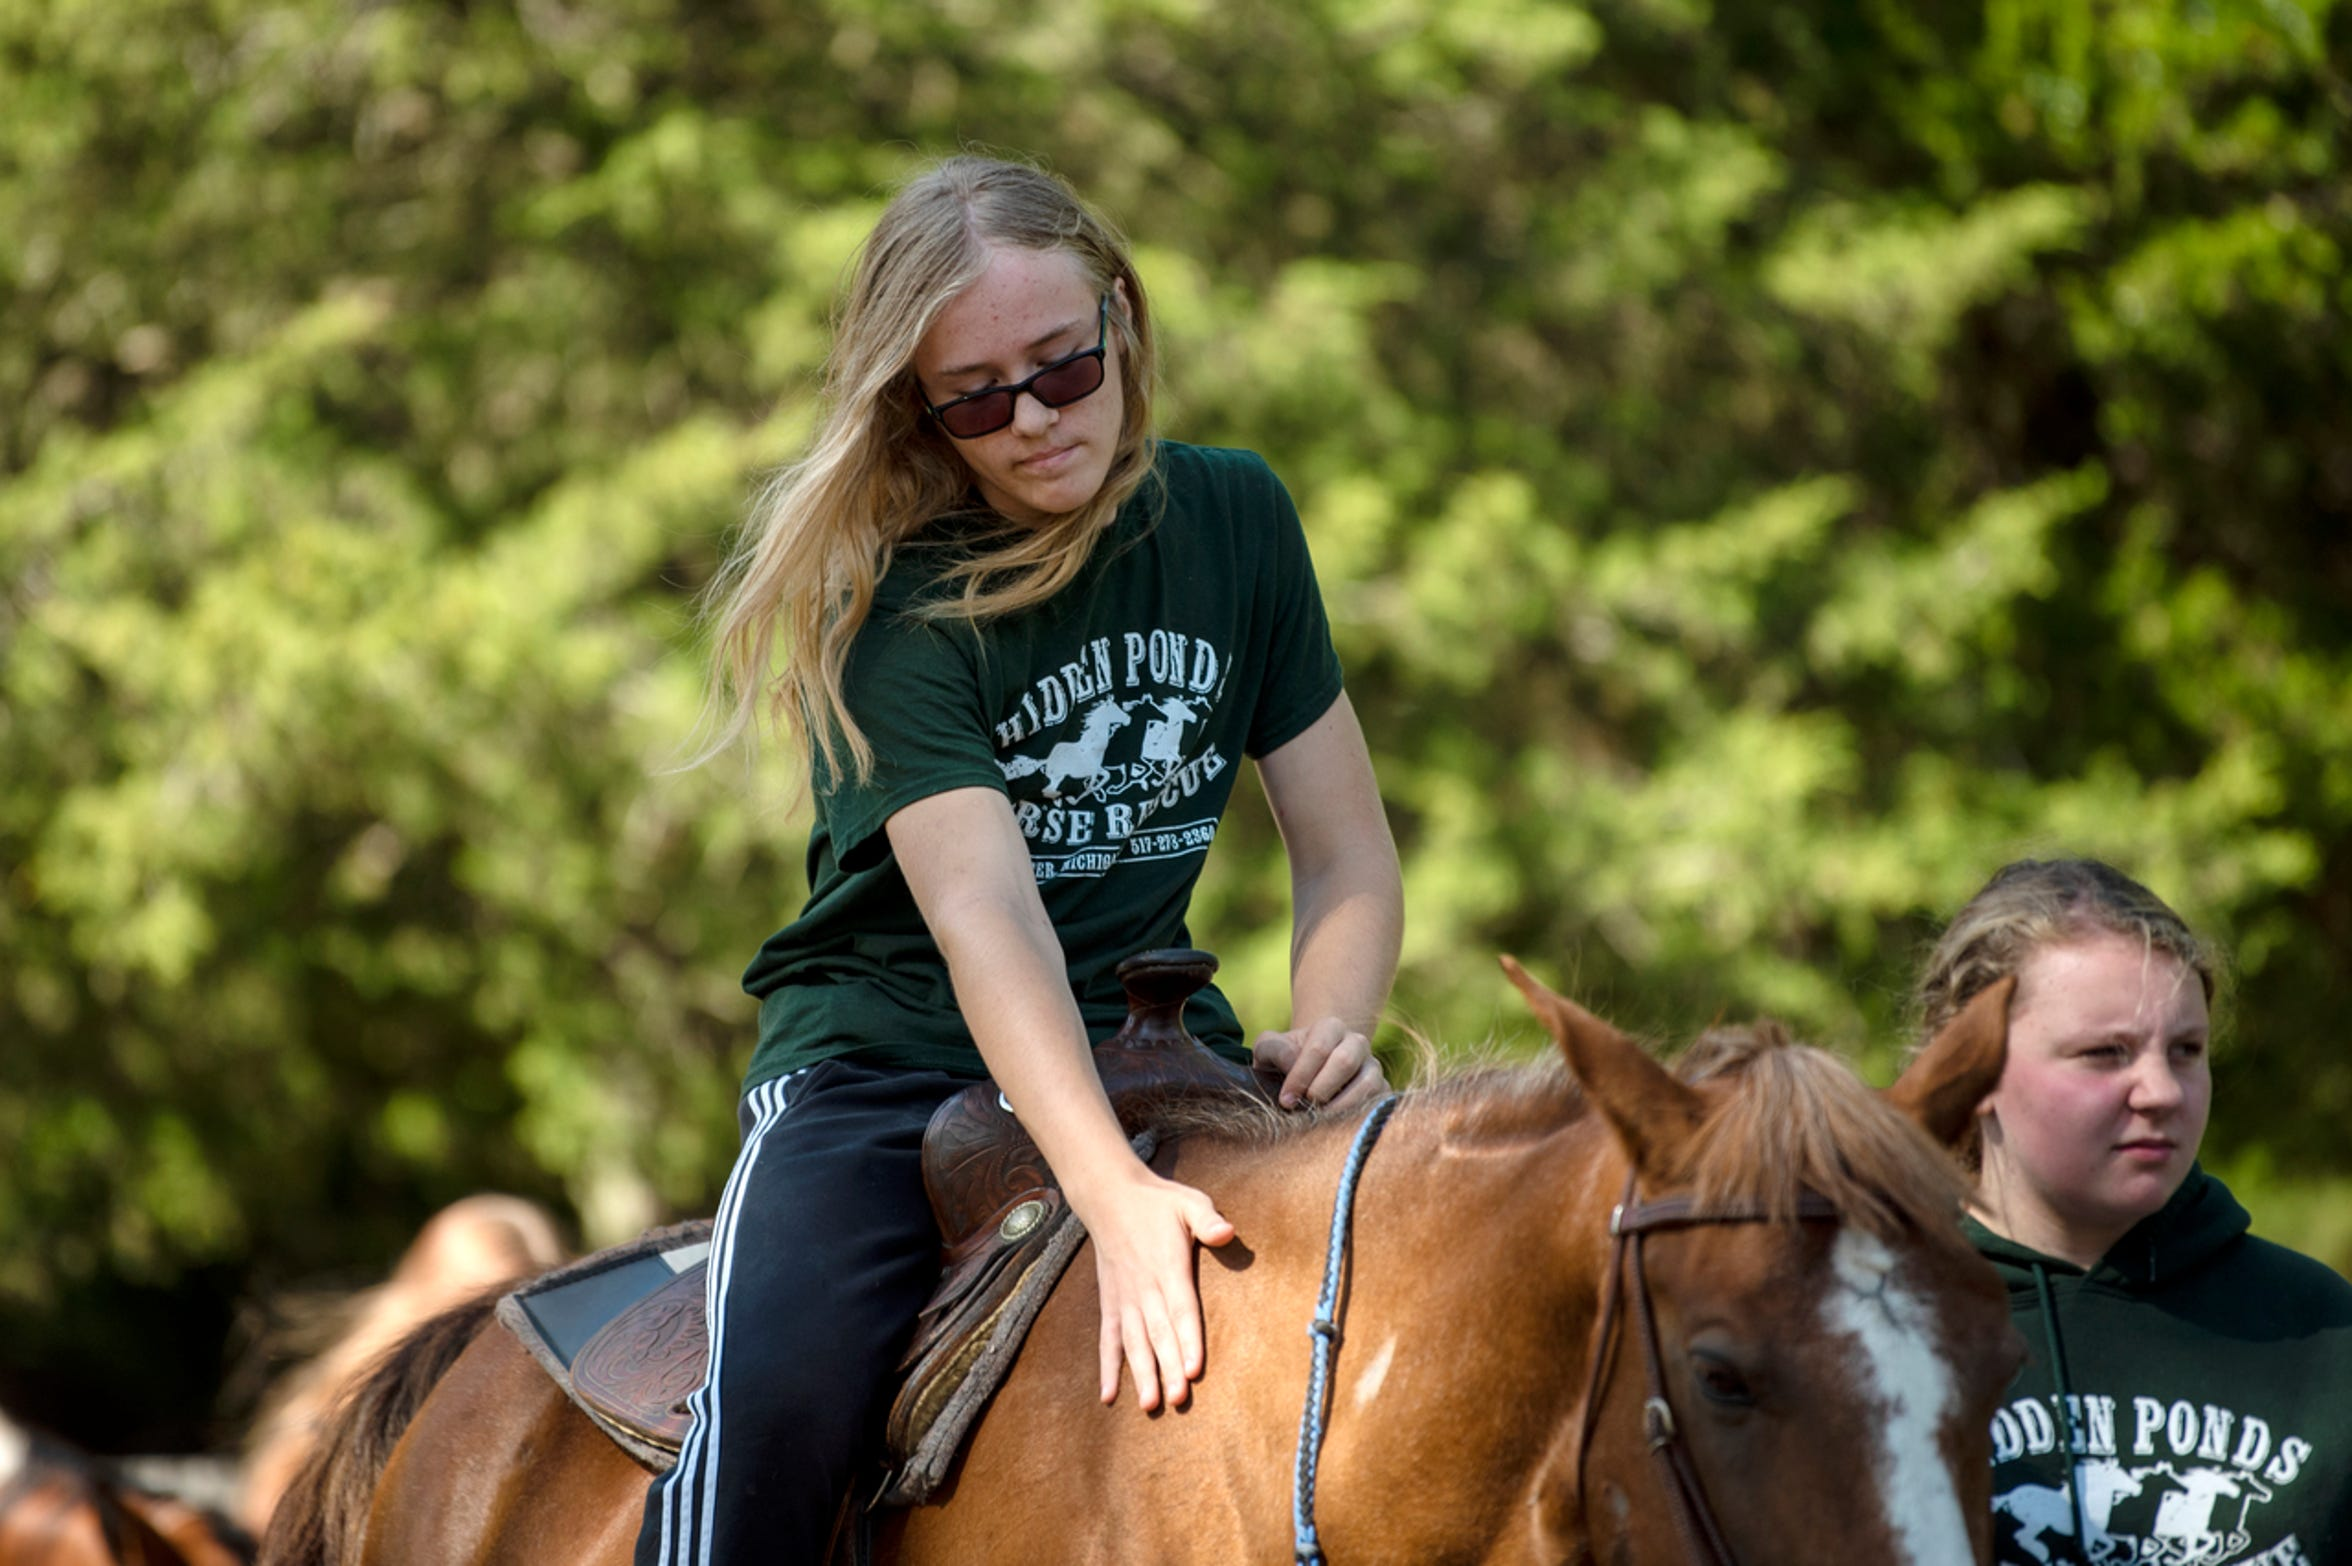 Gavin Shook, 13, rides Cher on Saturday, Sept. 7, 2019 at Hidden Ponds Horse Rescue in Coldwater, Mich. At Hidden Ponds, rescued horses are used for therapy, giving horses and humans a second chance.